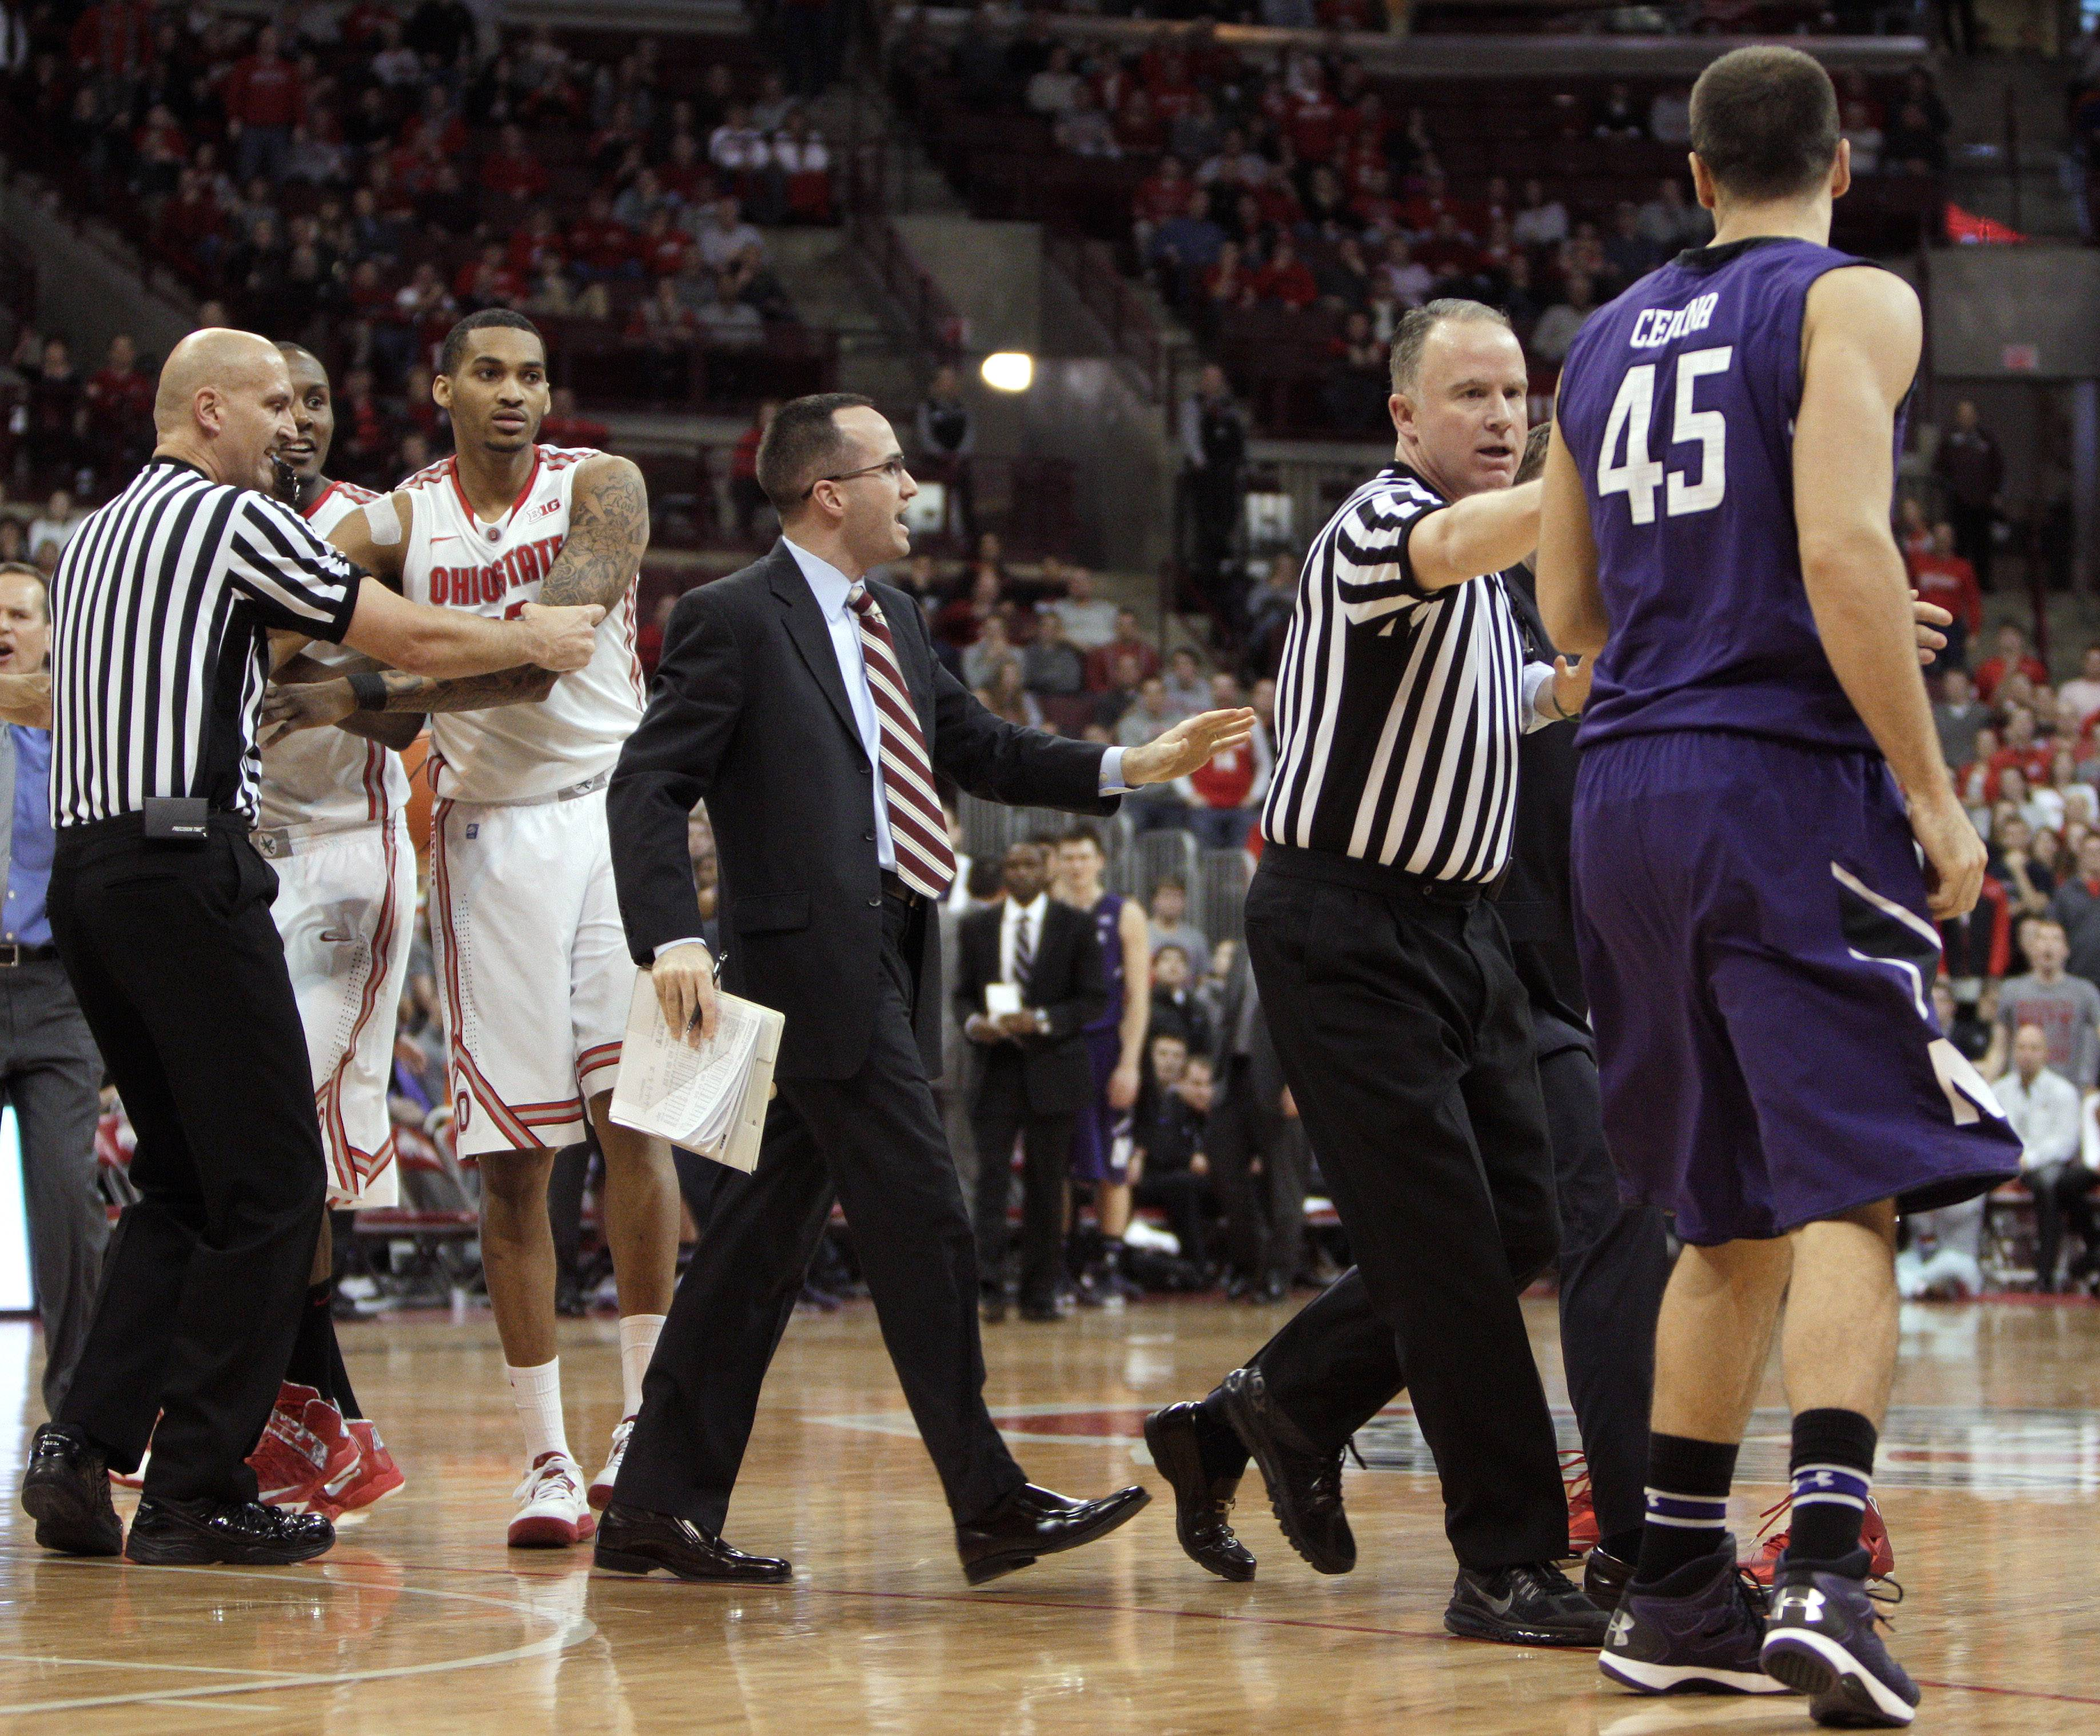 Referees and coaches separate Northwestern's Nikola Cerina (45) and Ohio State's LaQuinton Ross during a second-half scuffle in an NCAA college basketball game Wednesday, Feb. 19, 2014, in Columbus, Ohio. Cerina and Ross were both ejected from the game. Ohio State defeated Northwestern 76-60. (AP Photo/Jay LaPrete)